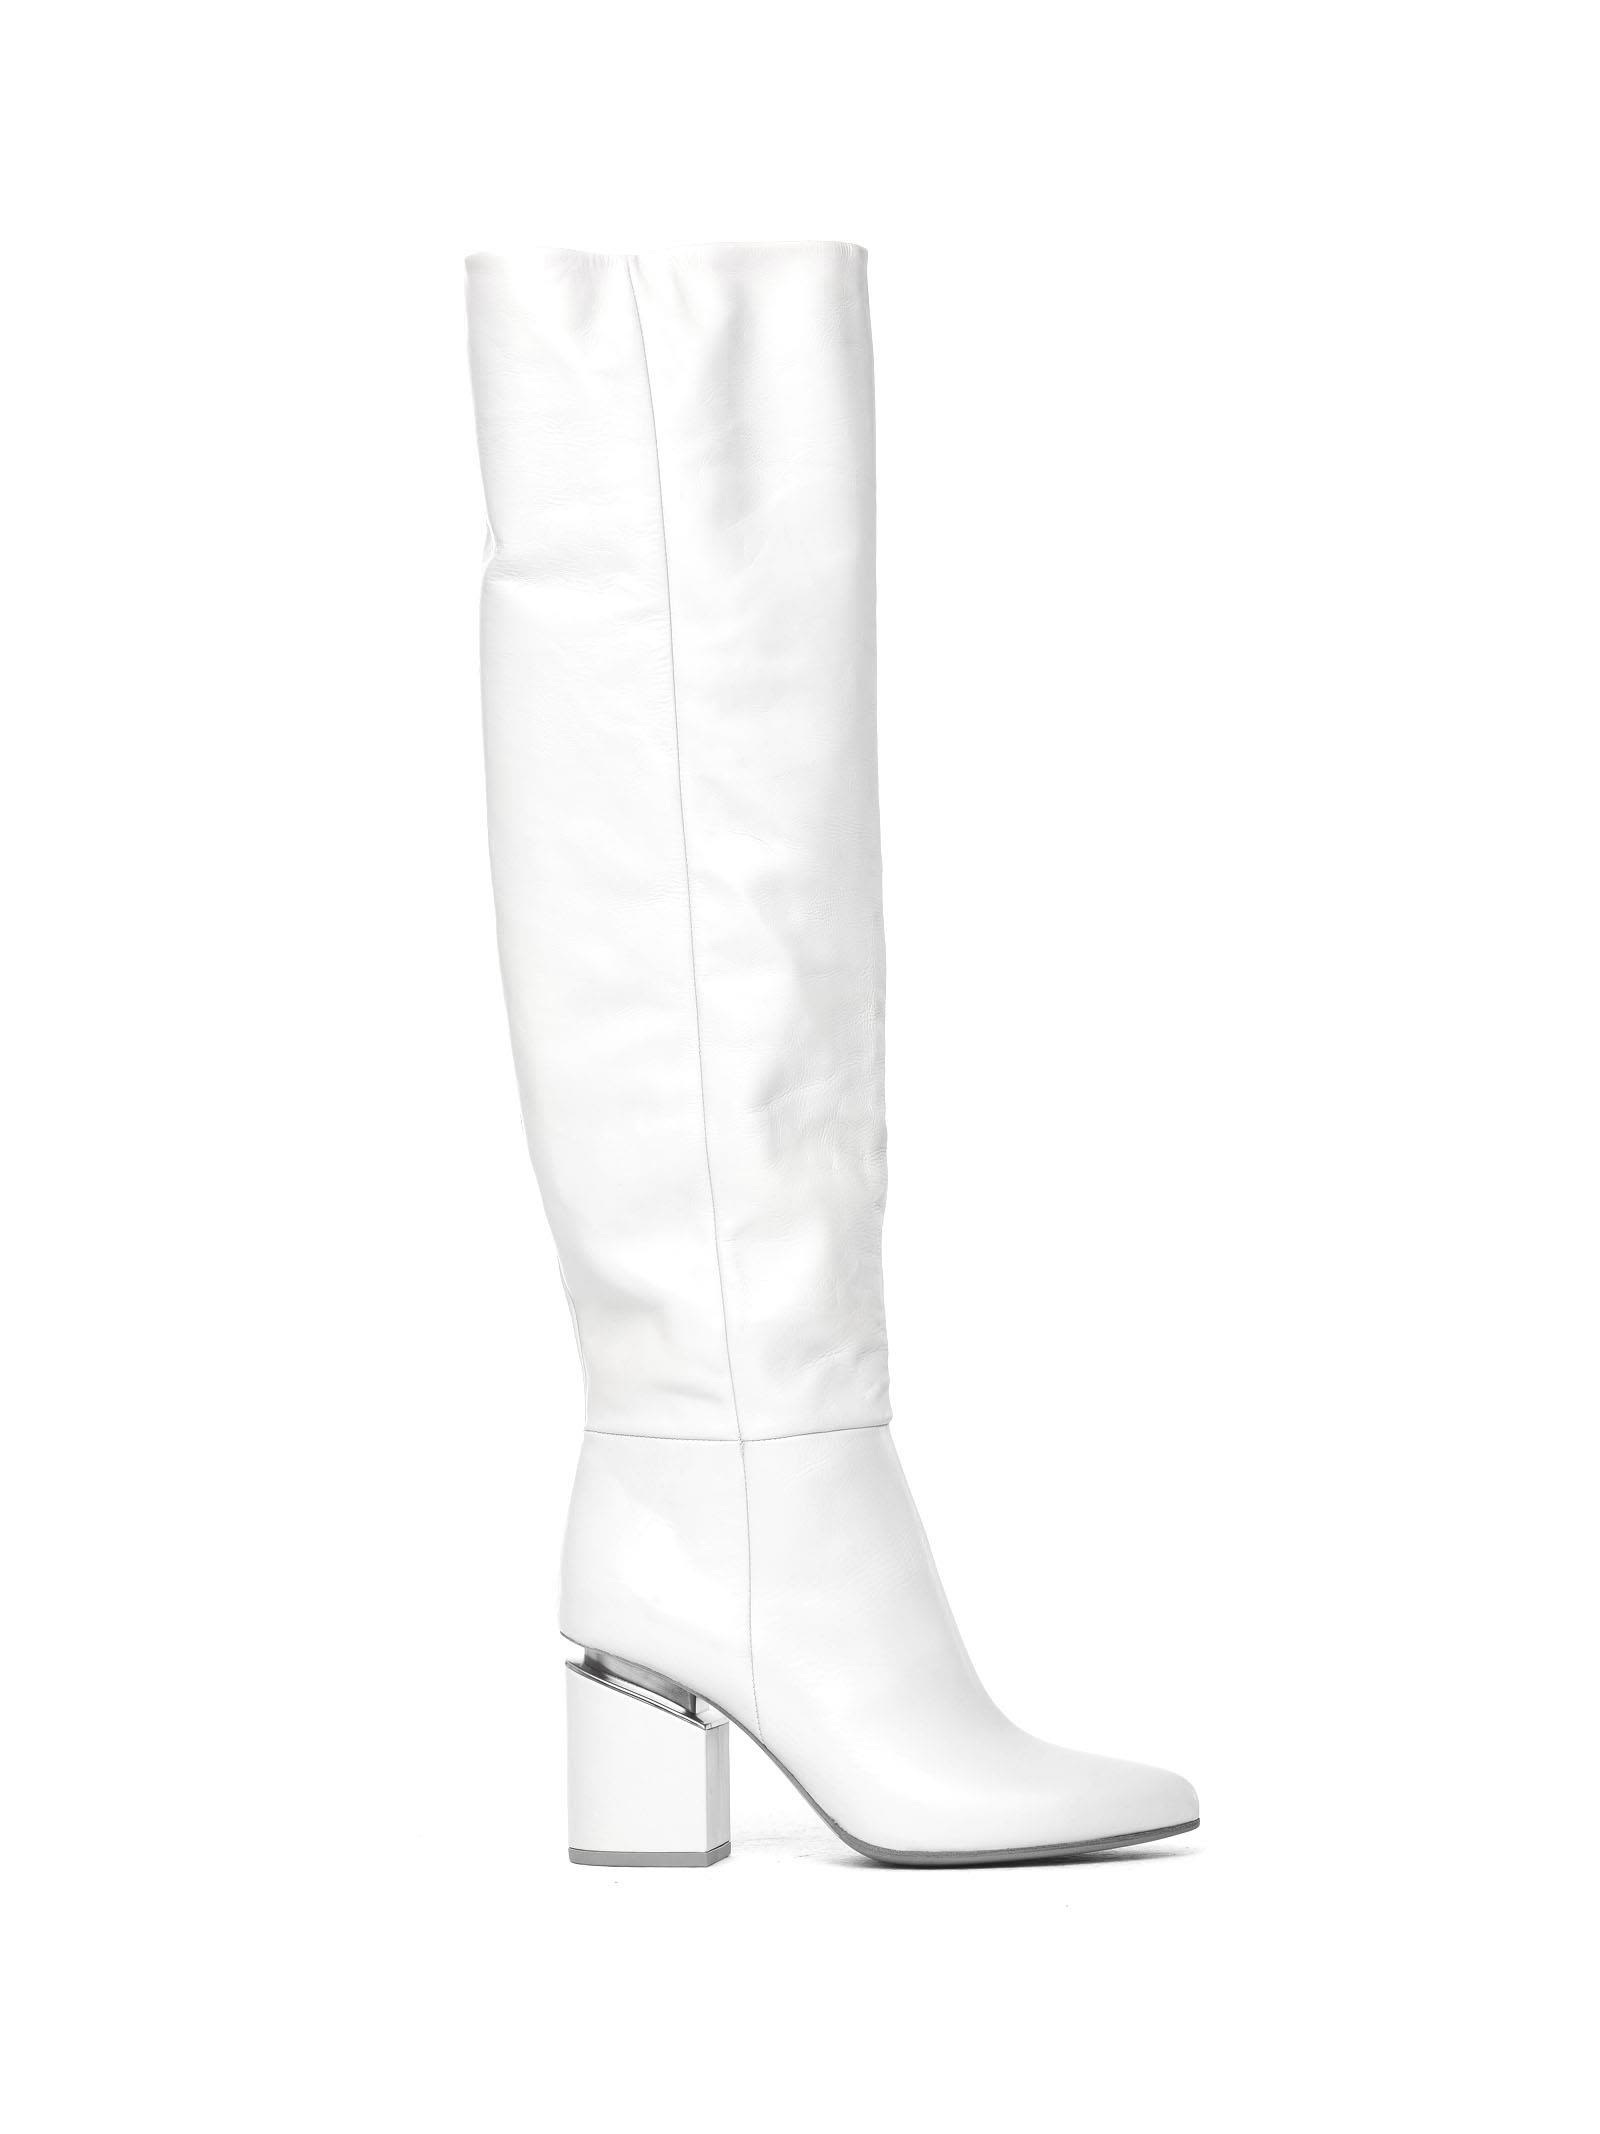 VIC MATIE White Leather Stove Pipe Boots With Suspended Heel in Bianco